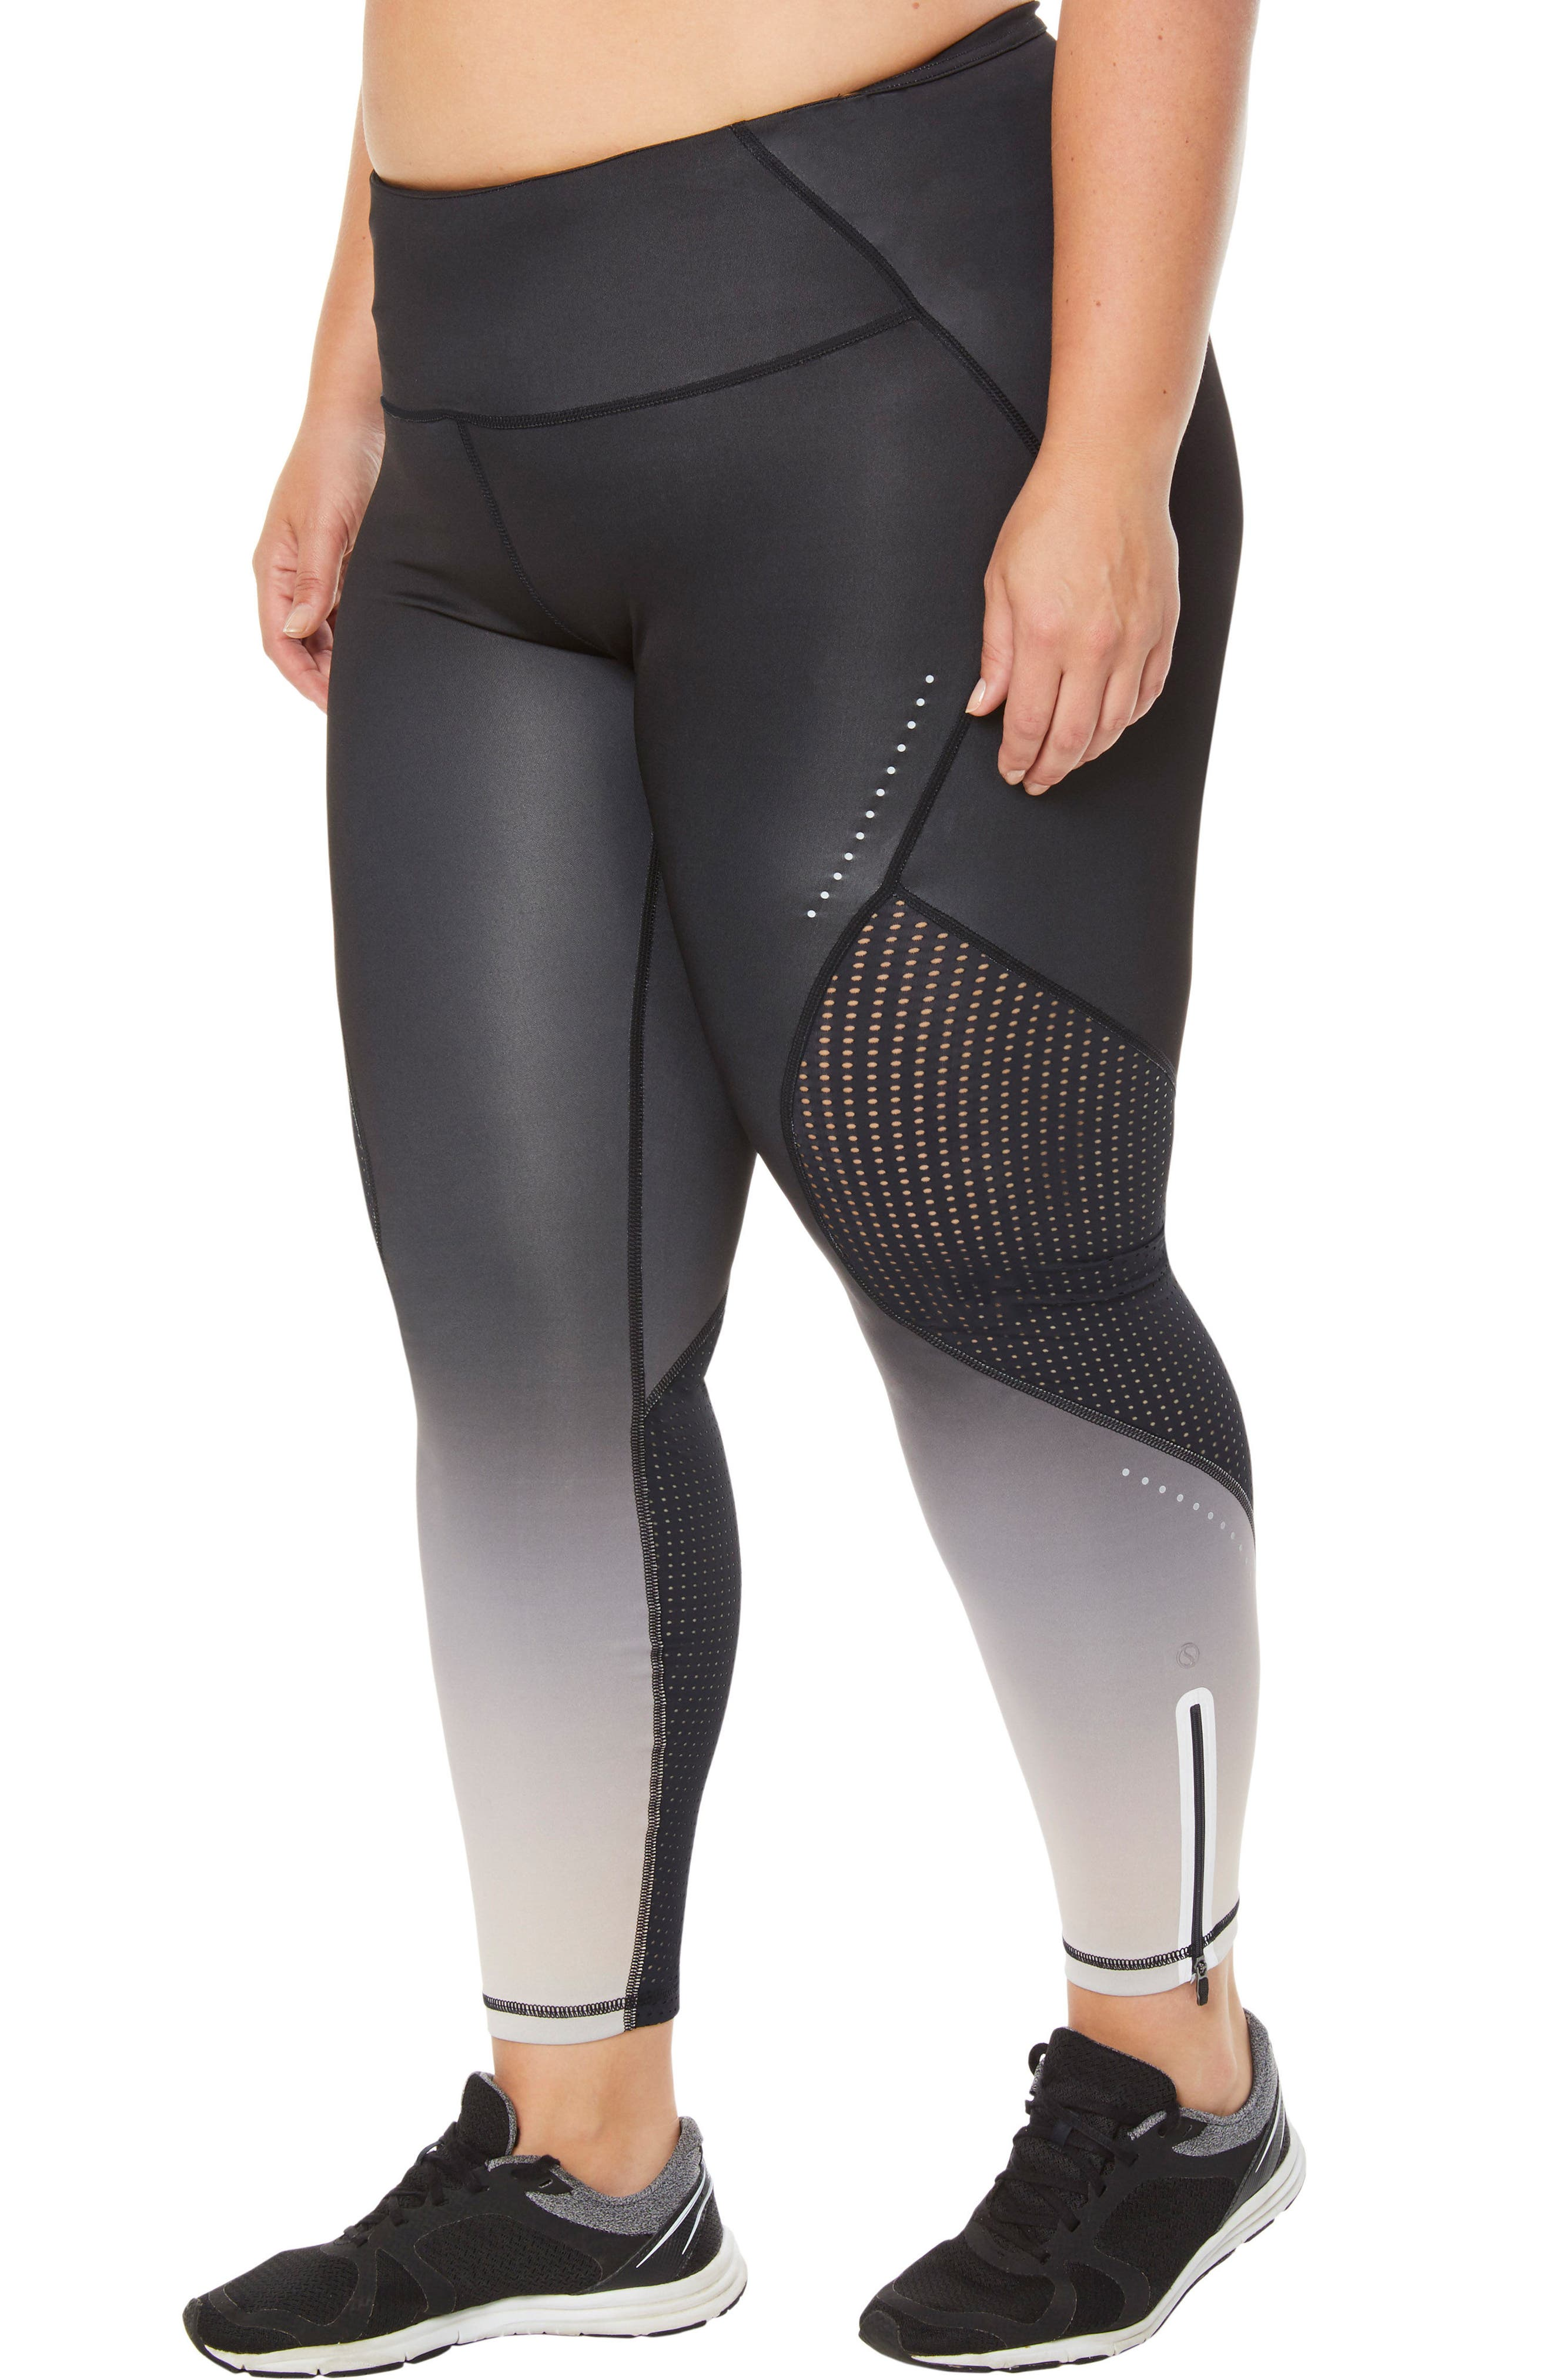 Protech V.3 Leggings,                             Alternate thumbnail 8, color,                             OMBRE TAUPE